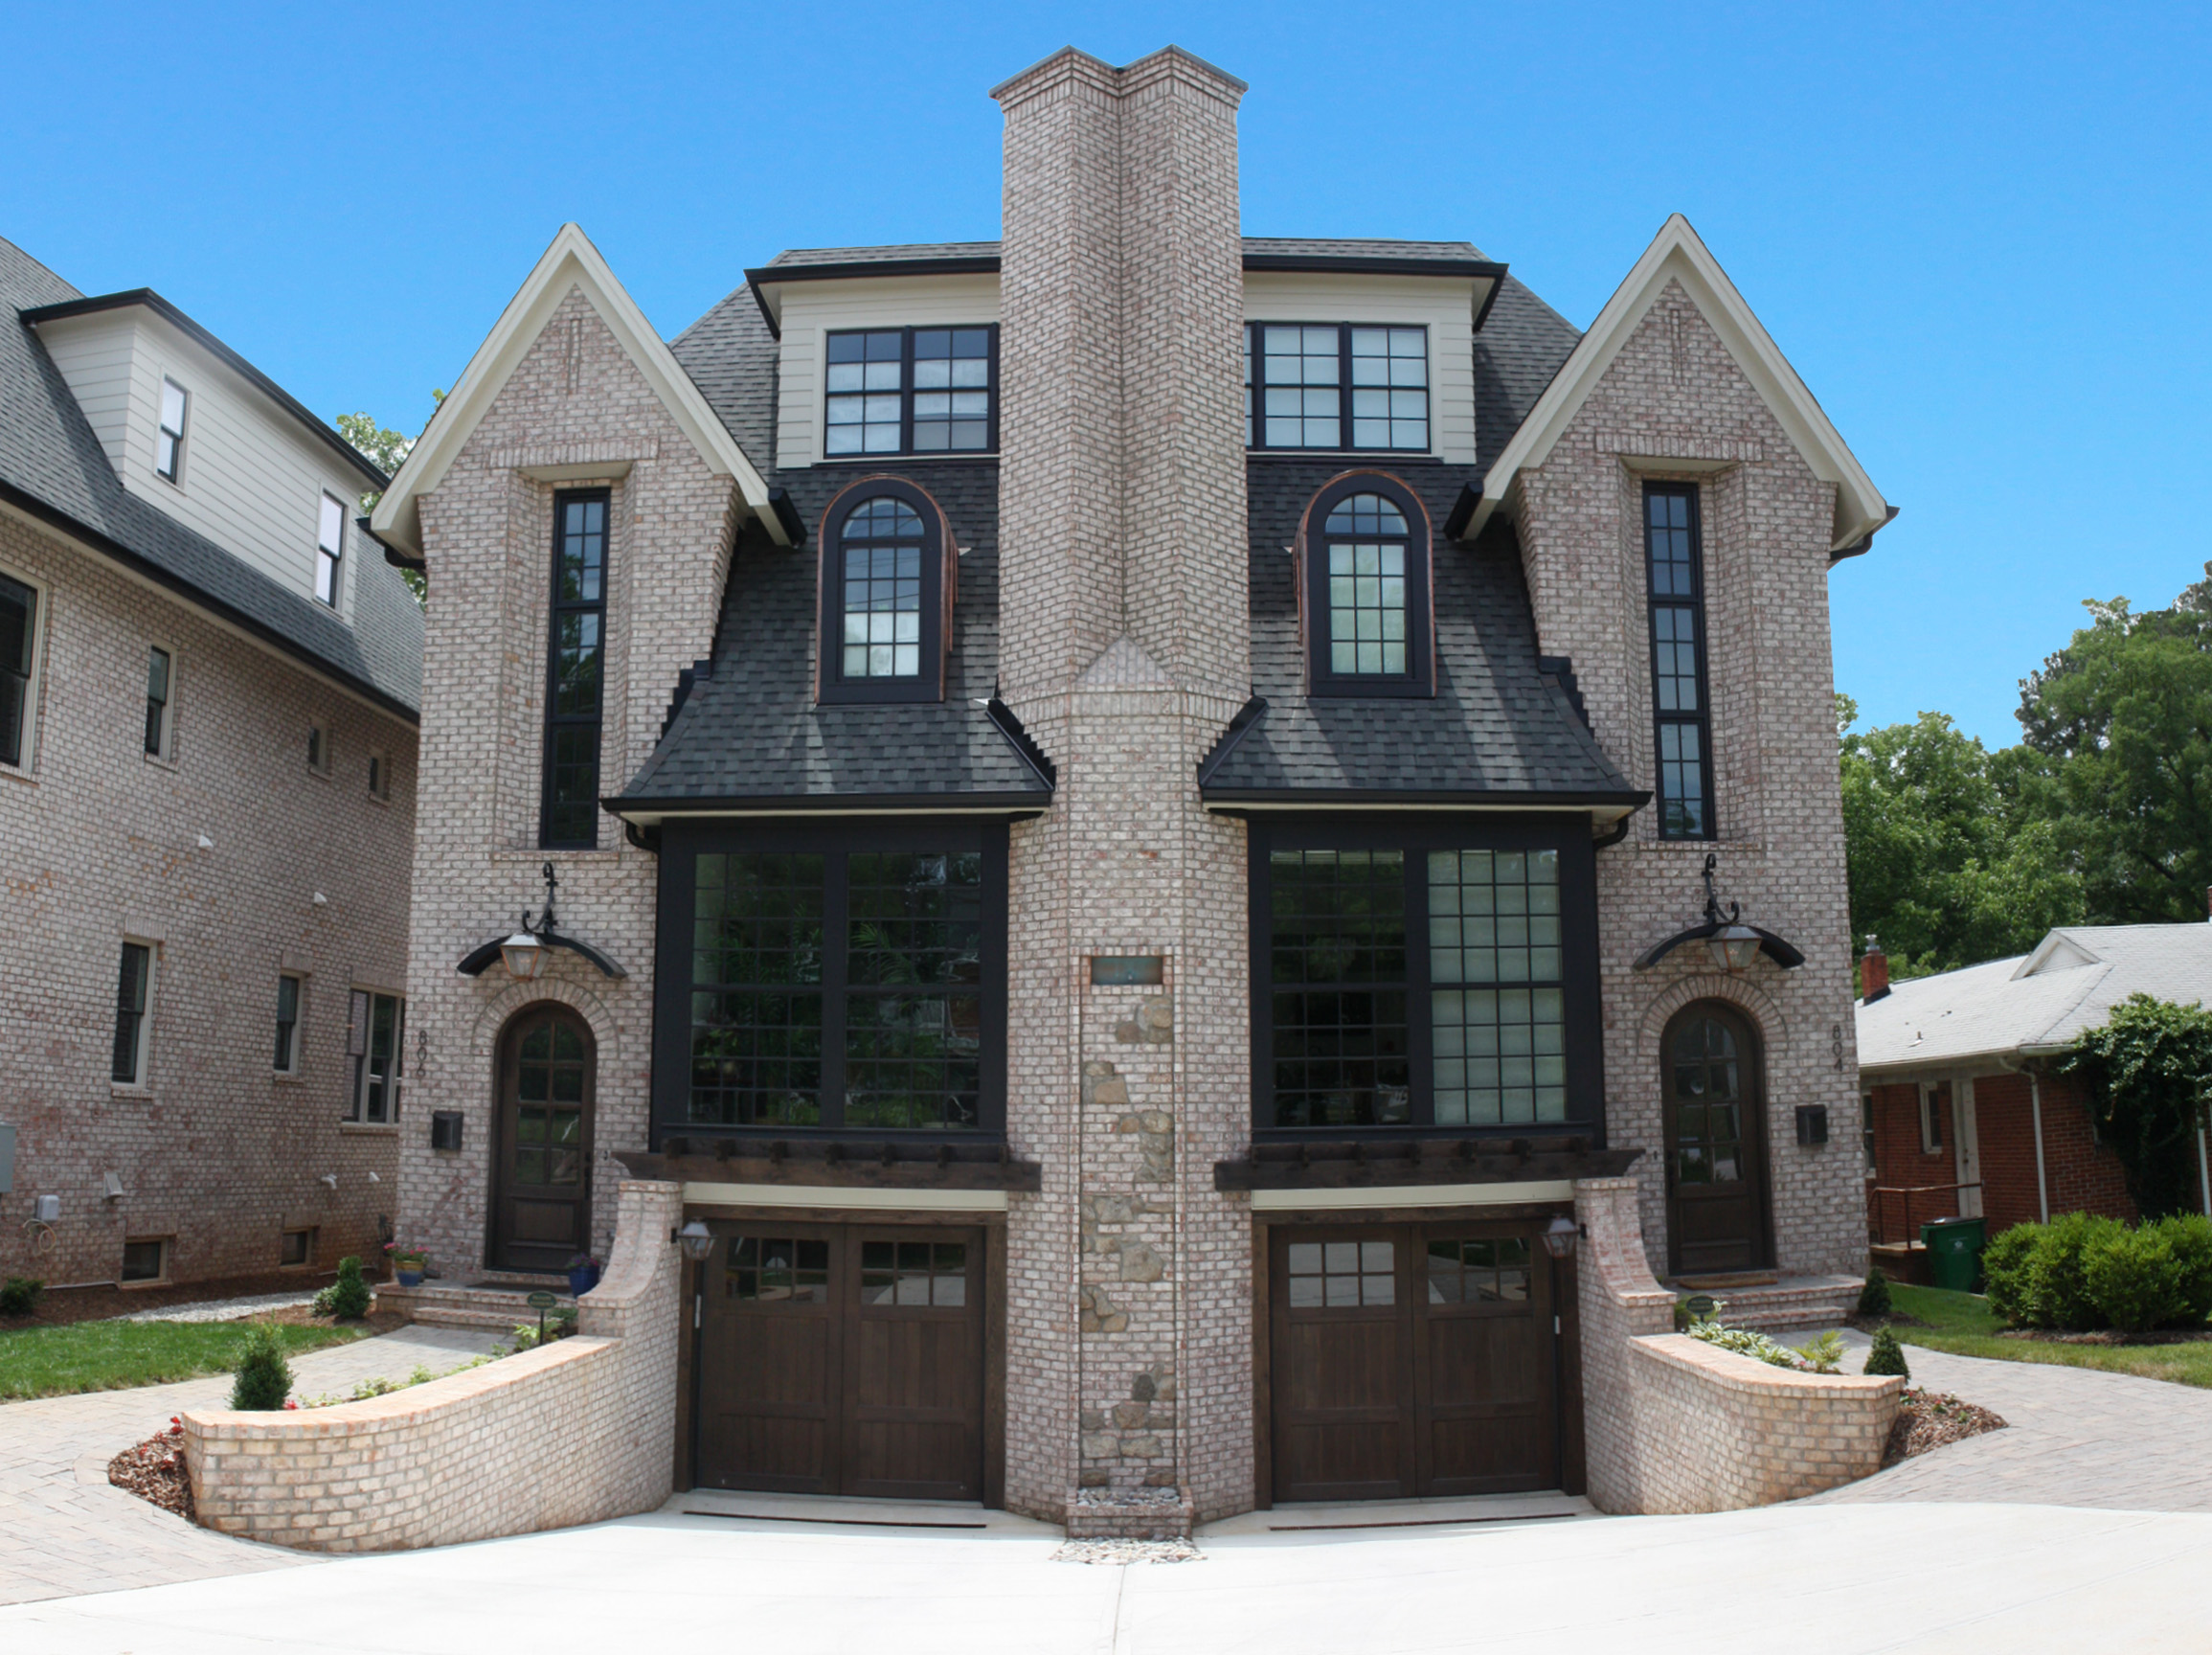 The Fountains at Mattie Rose Custom Duet Homes For Sale in